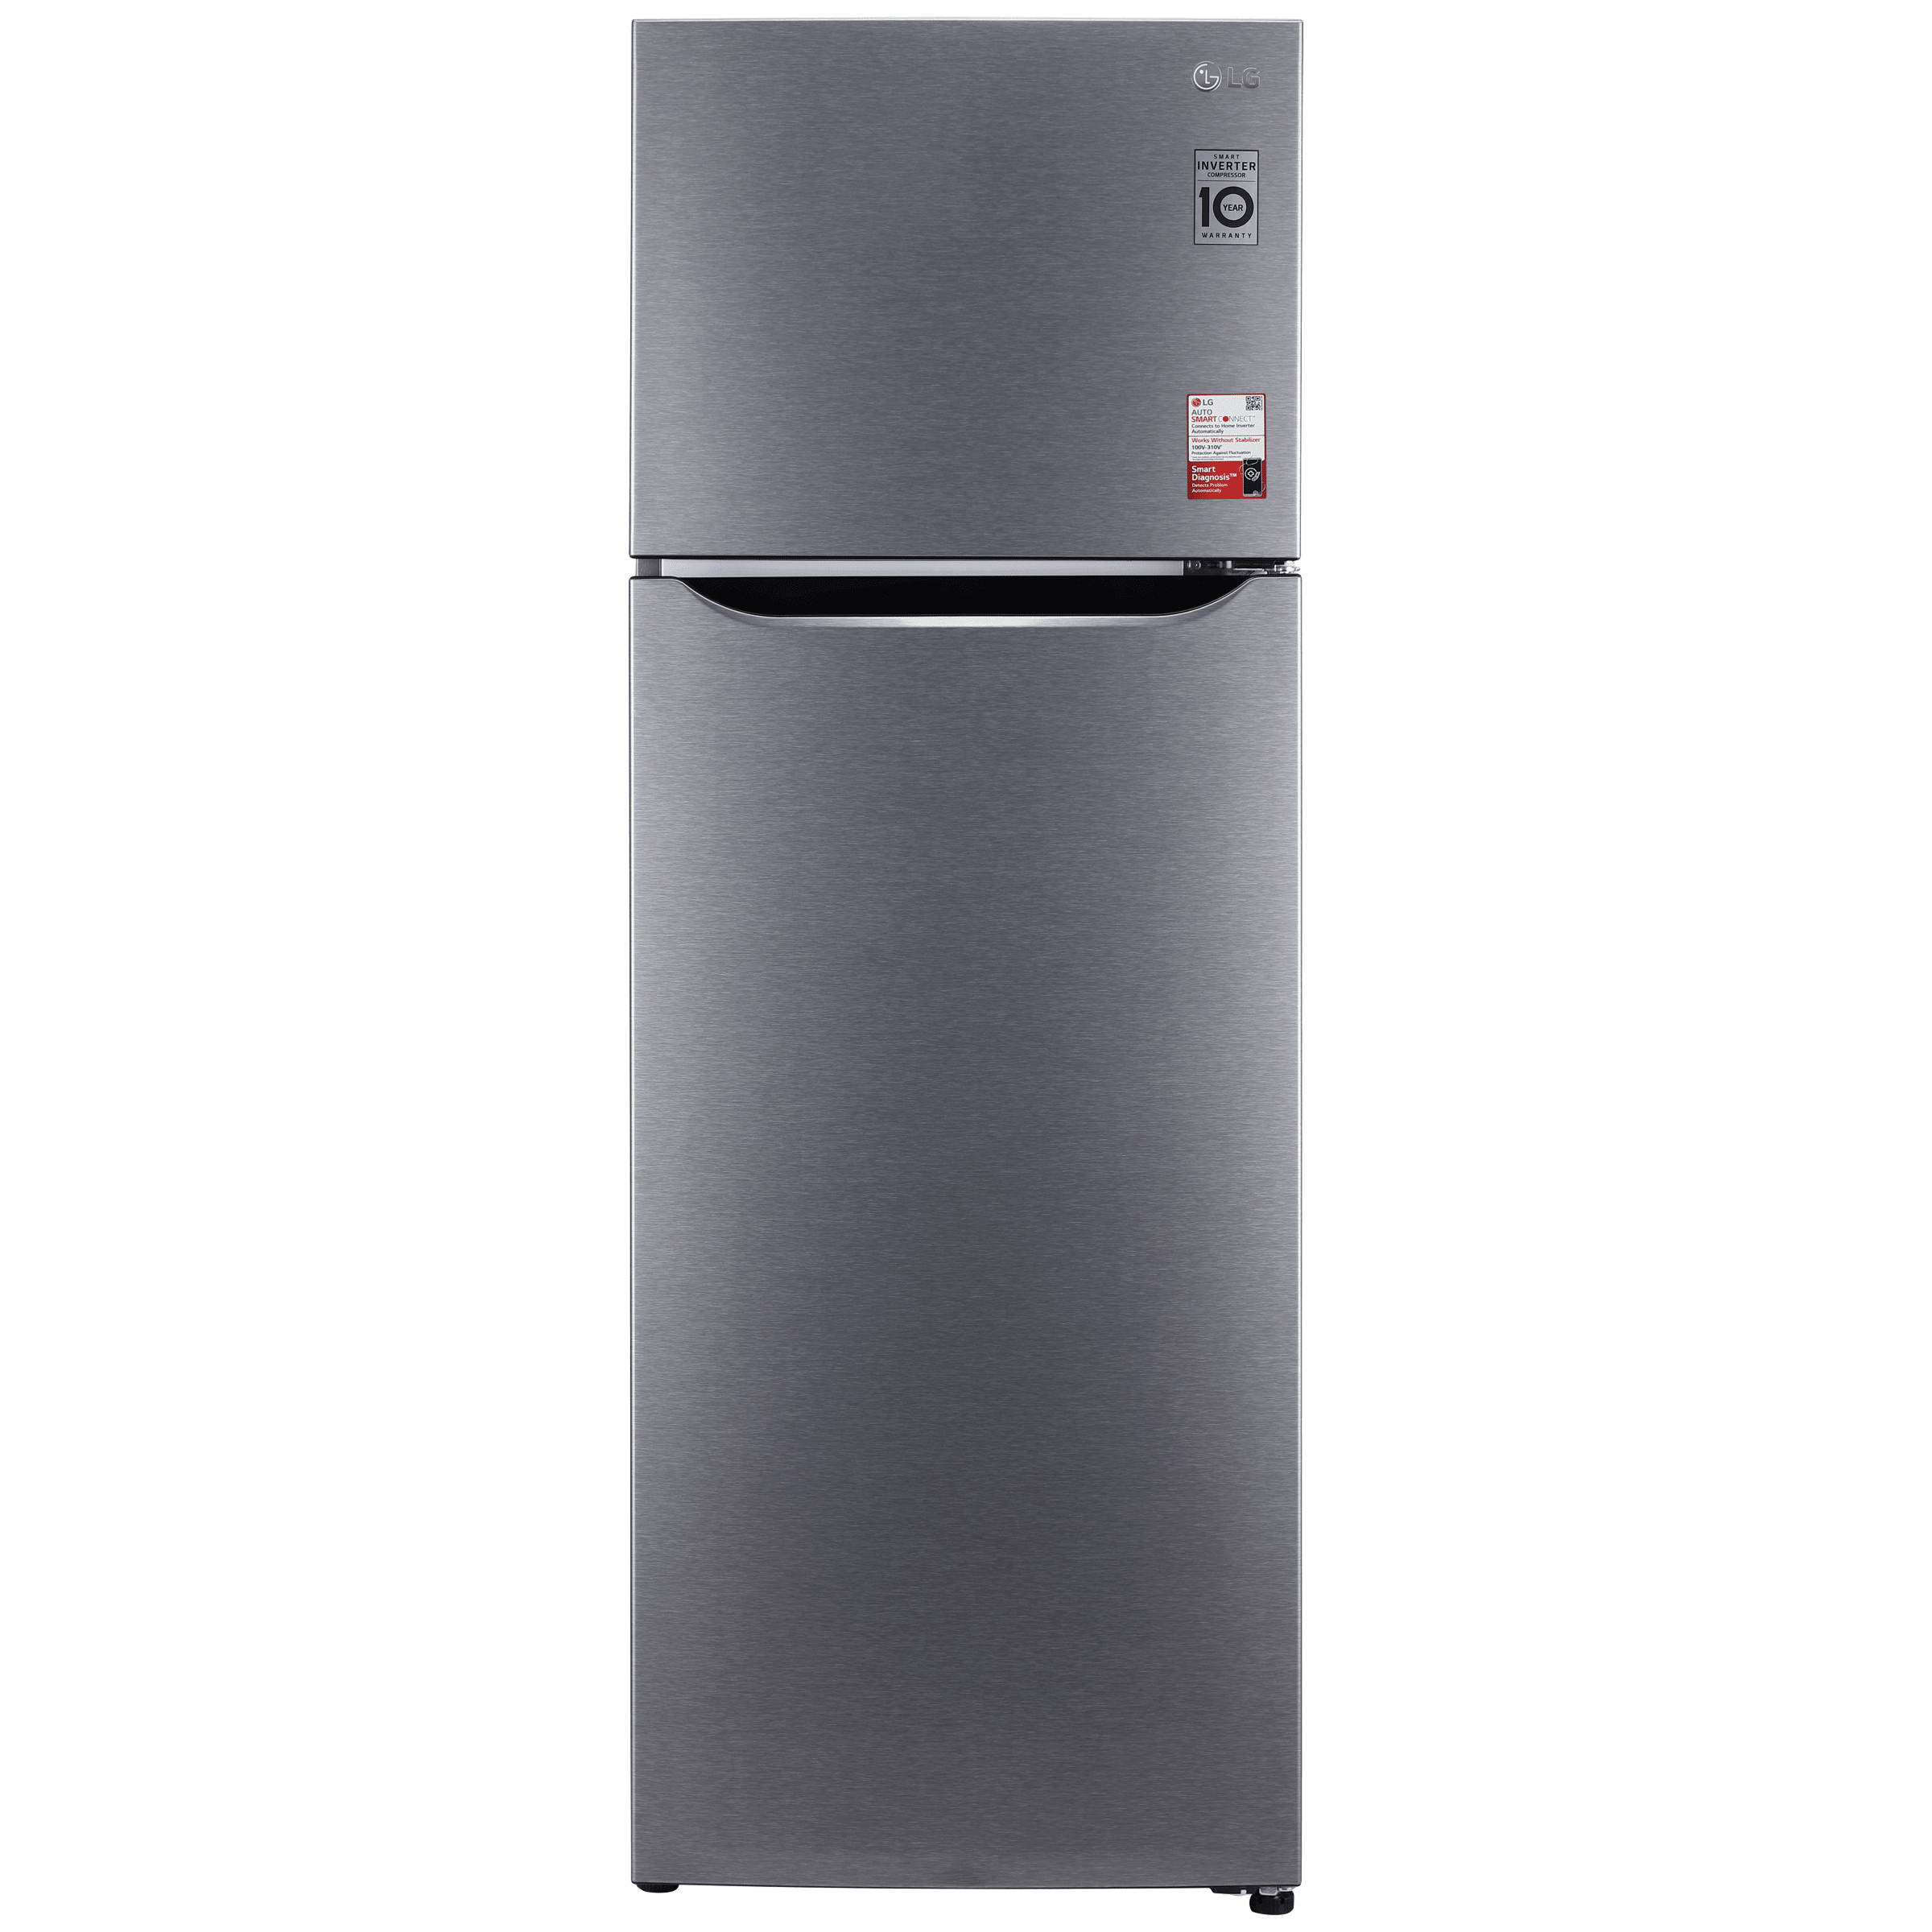 LG 308 Litres 2 Star Frost Free Inverter Double Door Refrigerator (Smart Diagnosis, GL-S322SDSY, Dazzle Steel)